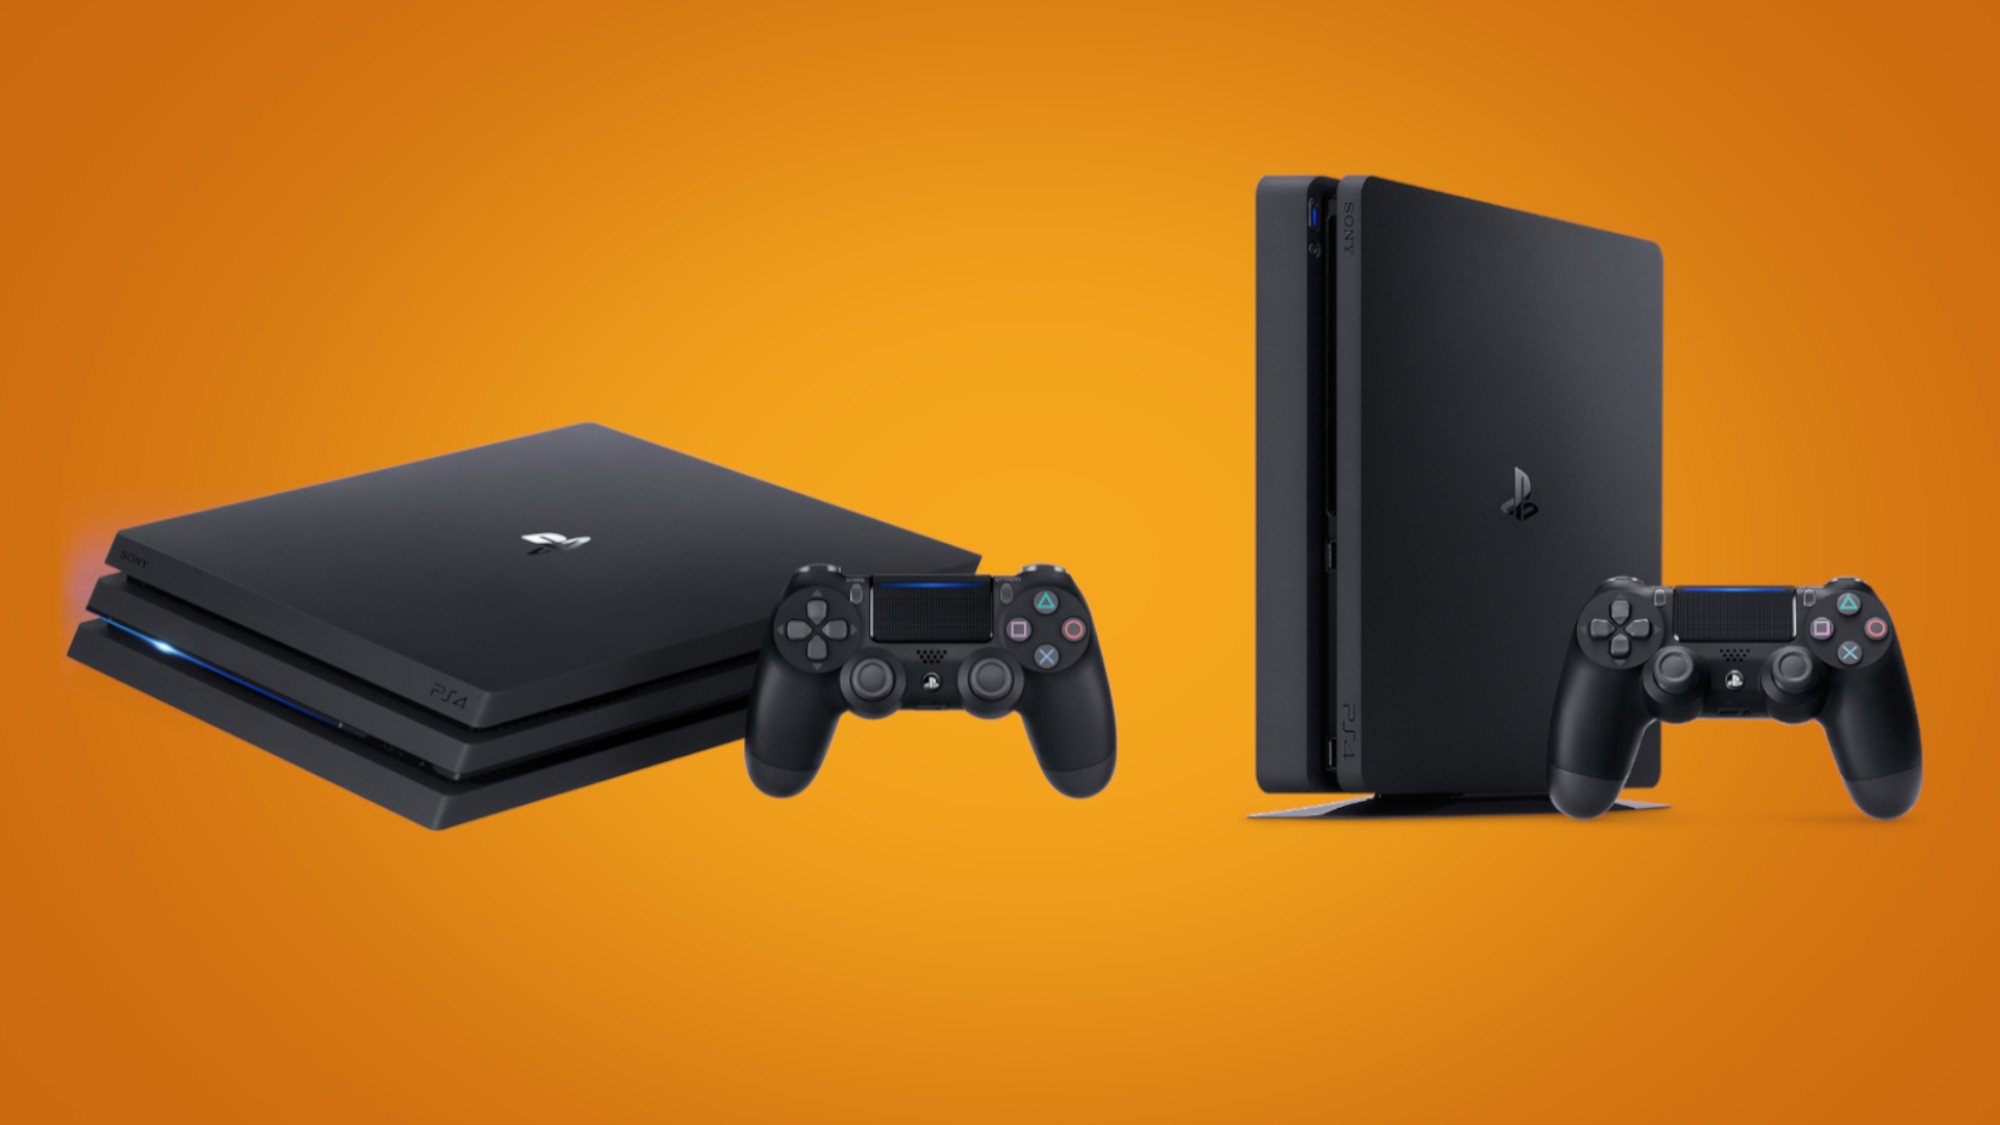 Where to buy a PS4: all the retailers with console stock and bundles available